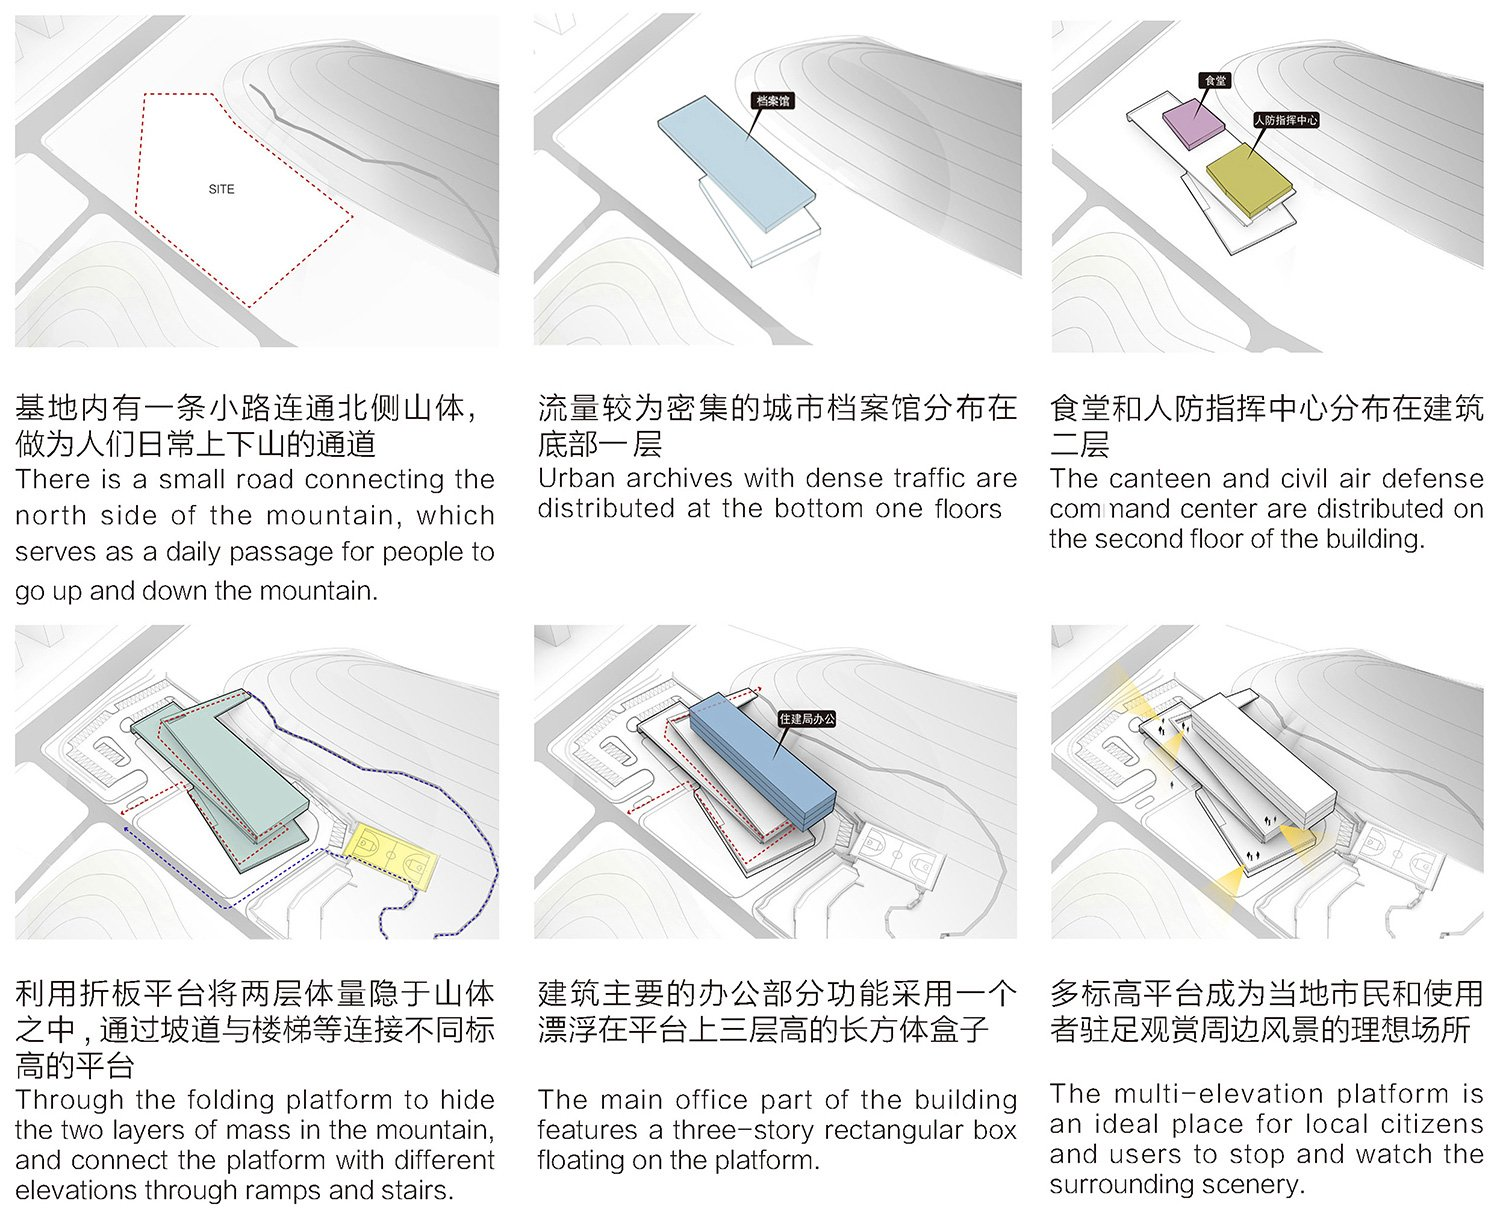 Shape-generation the Architectural Design and Research Institute of Zhejiang University Co., Ltd}